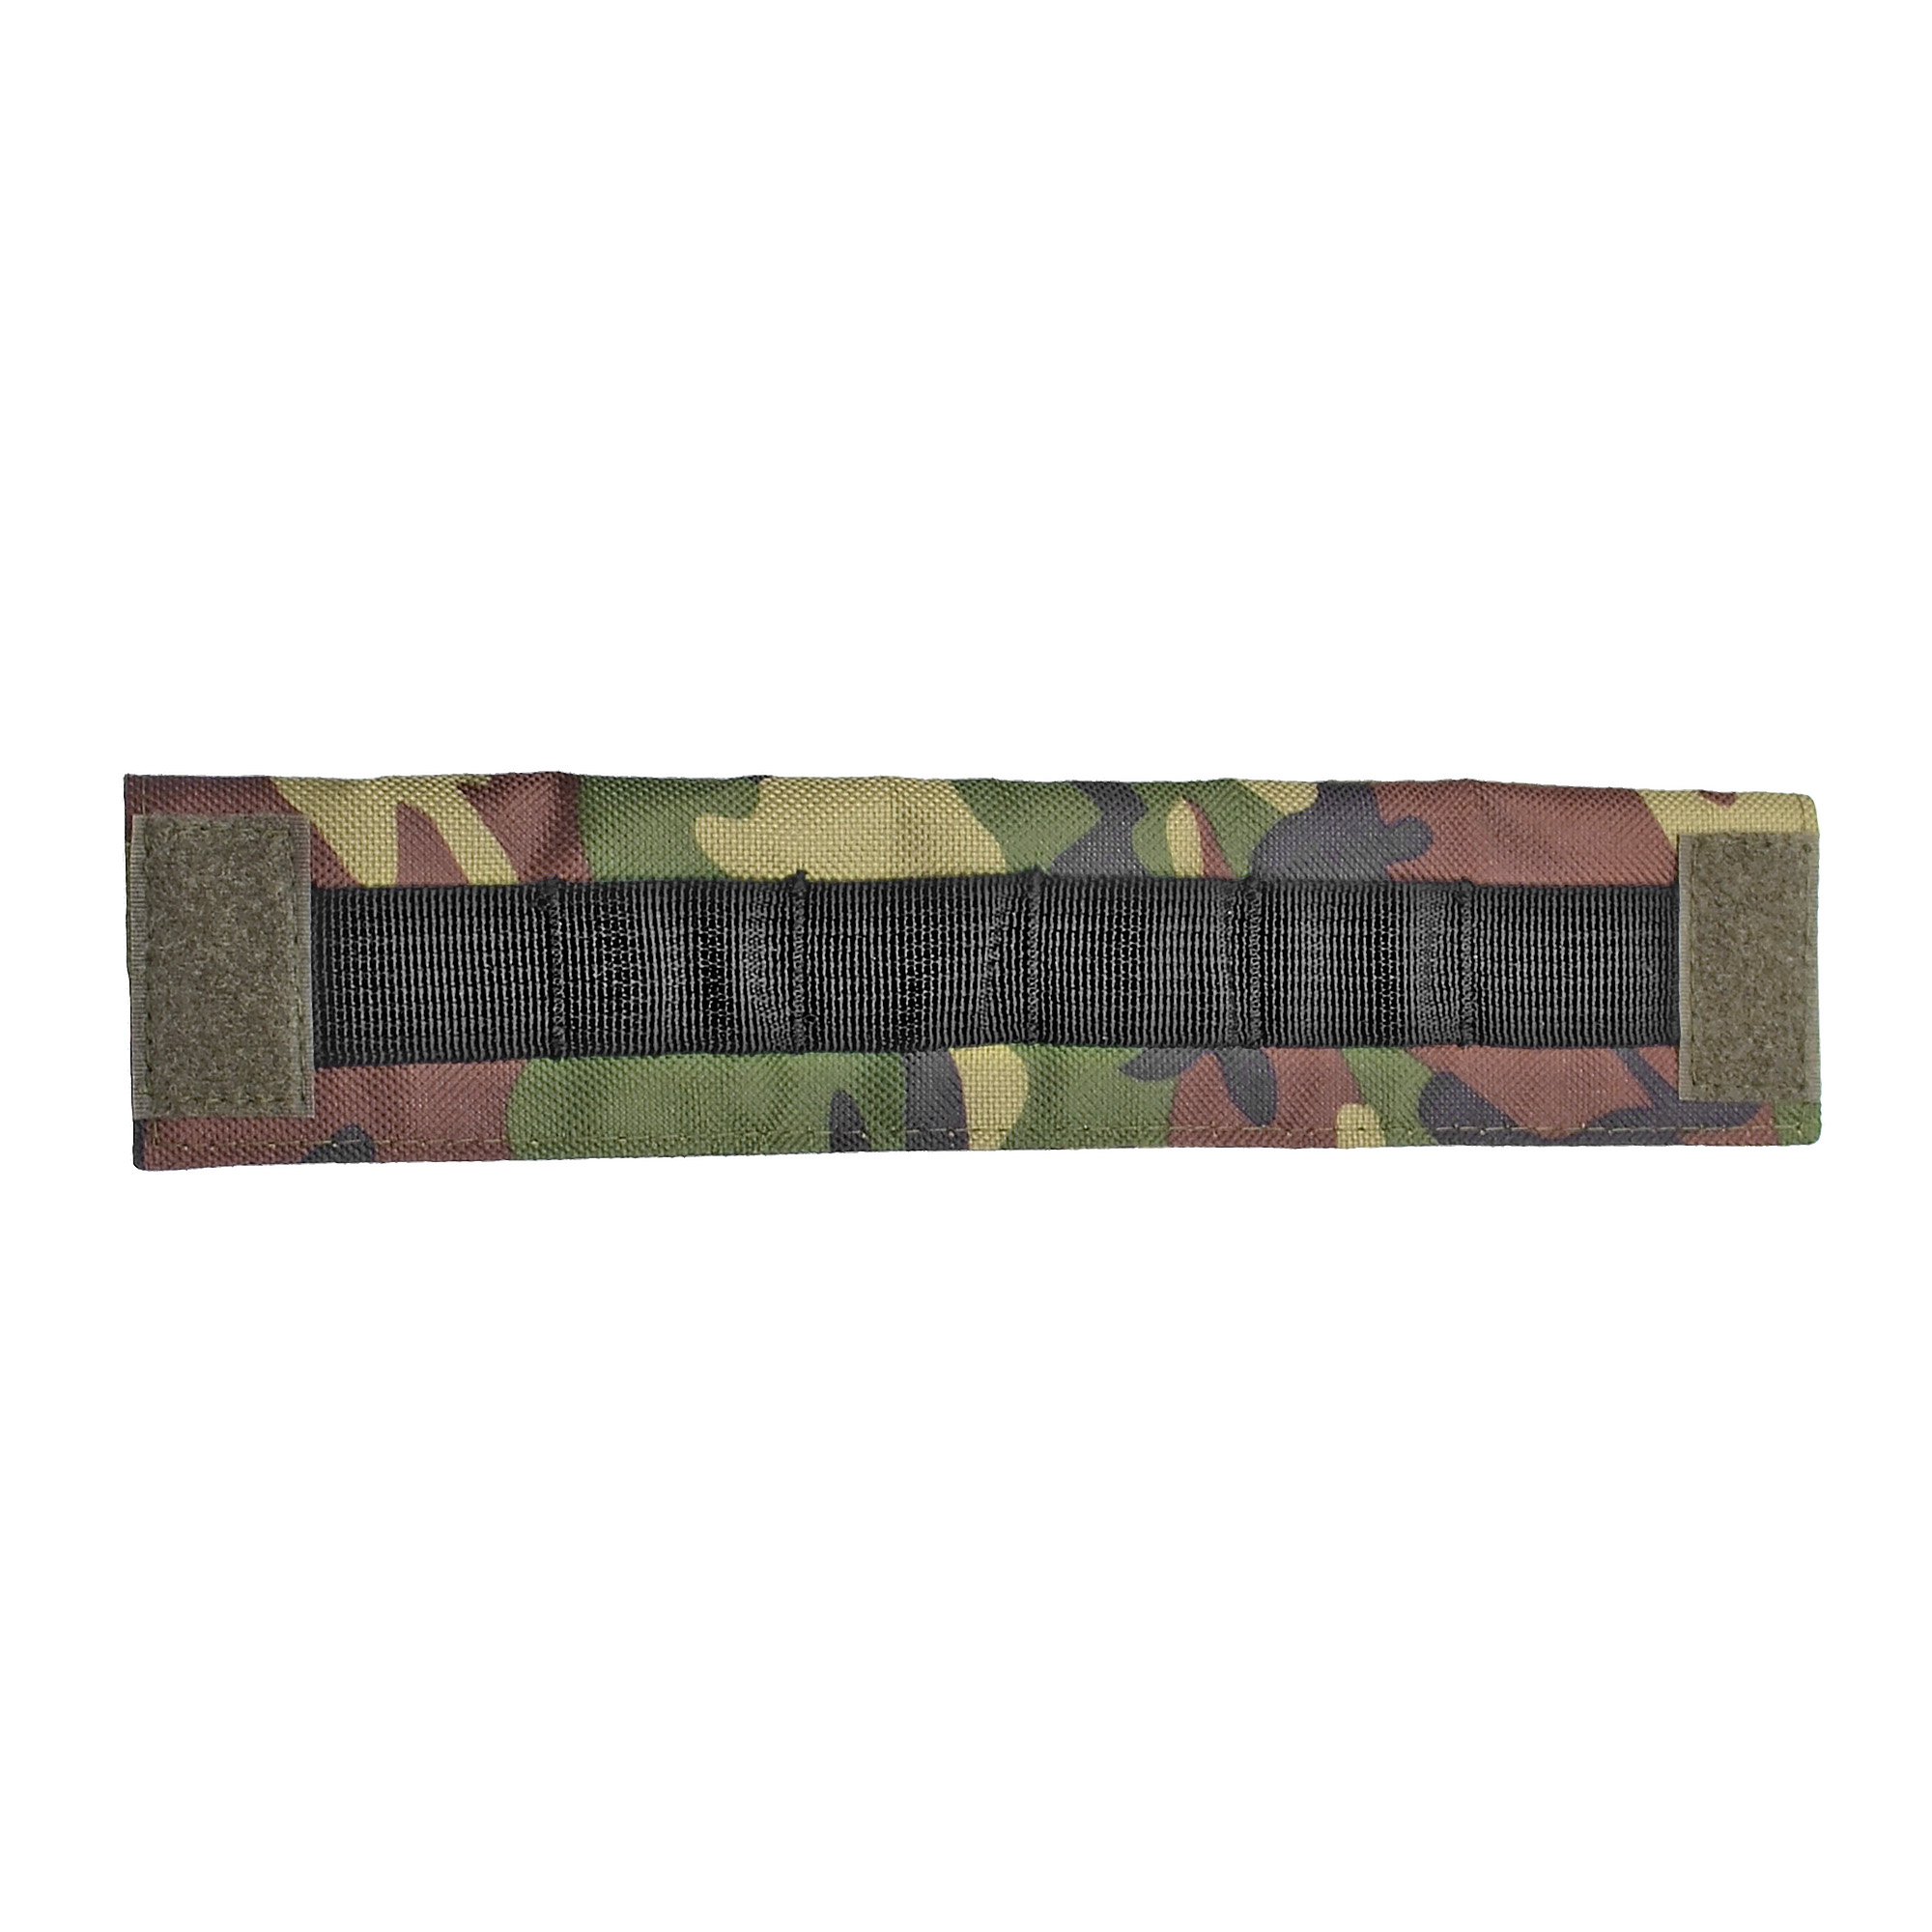 Walkers Rzr Headband Wrap Molle Camo